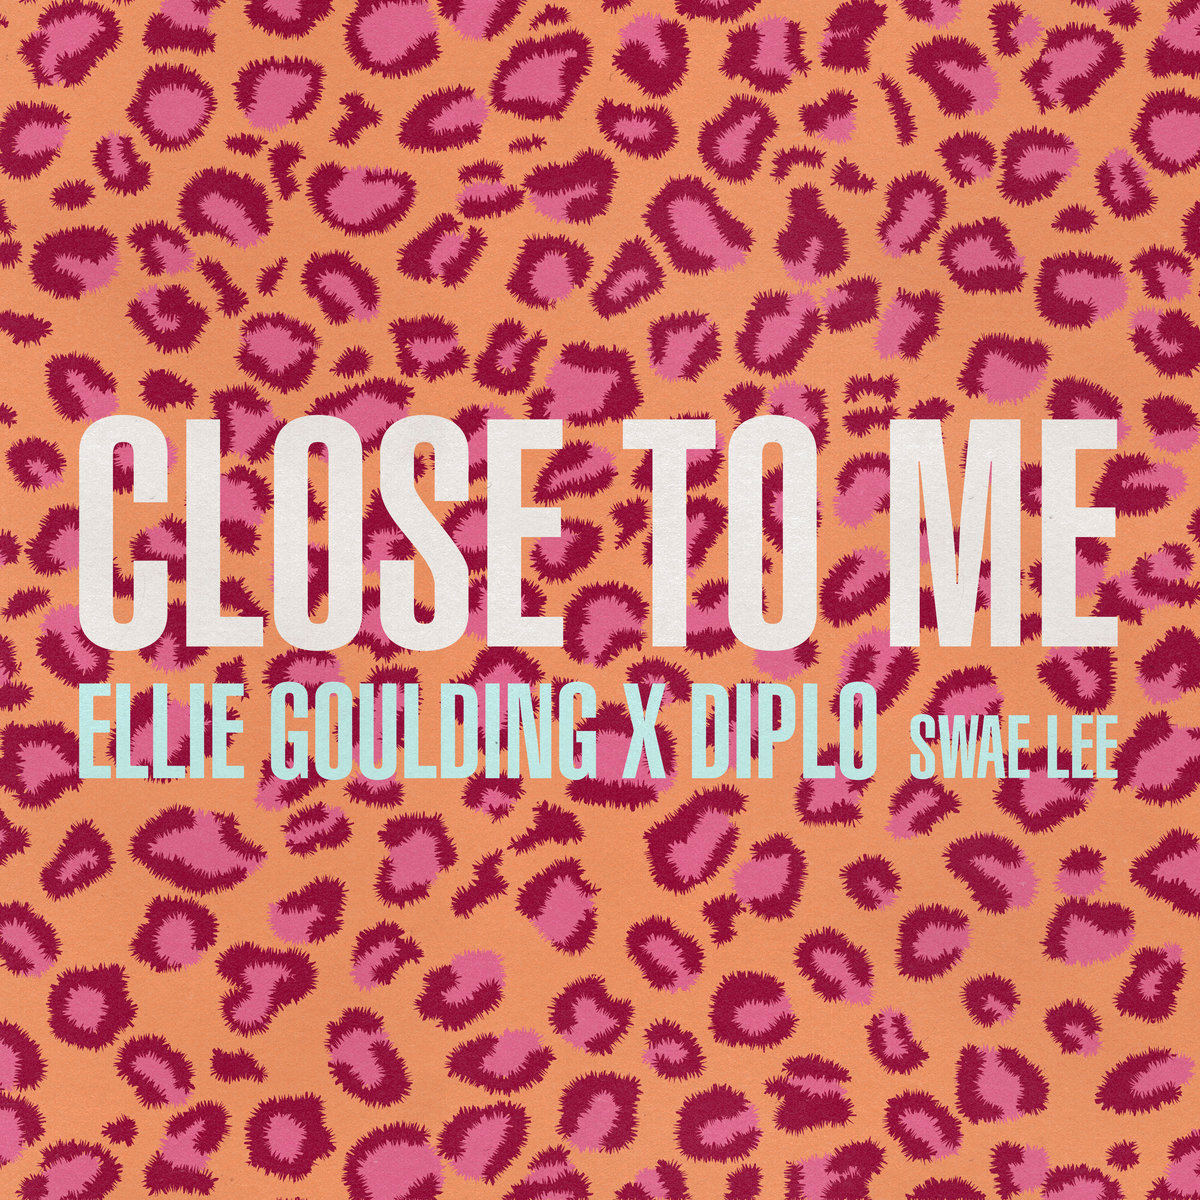 Close To MeEllie Gouling X Diplo Feat Swae Lee